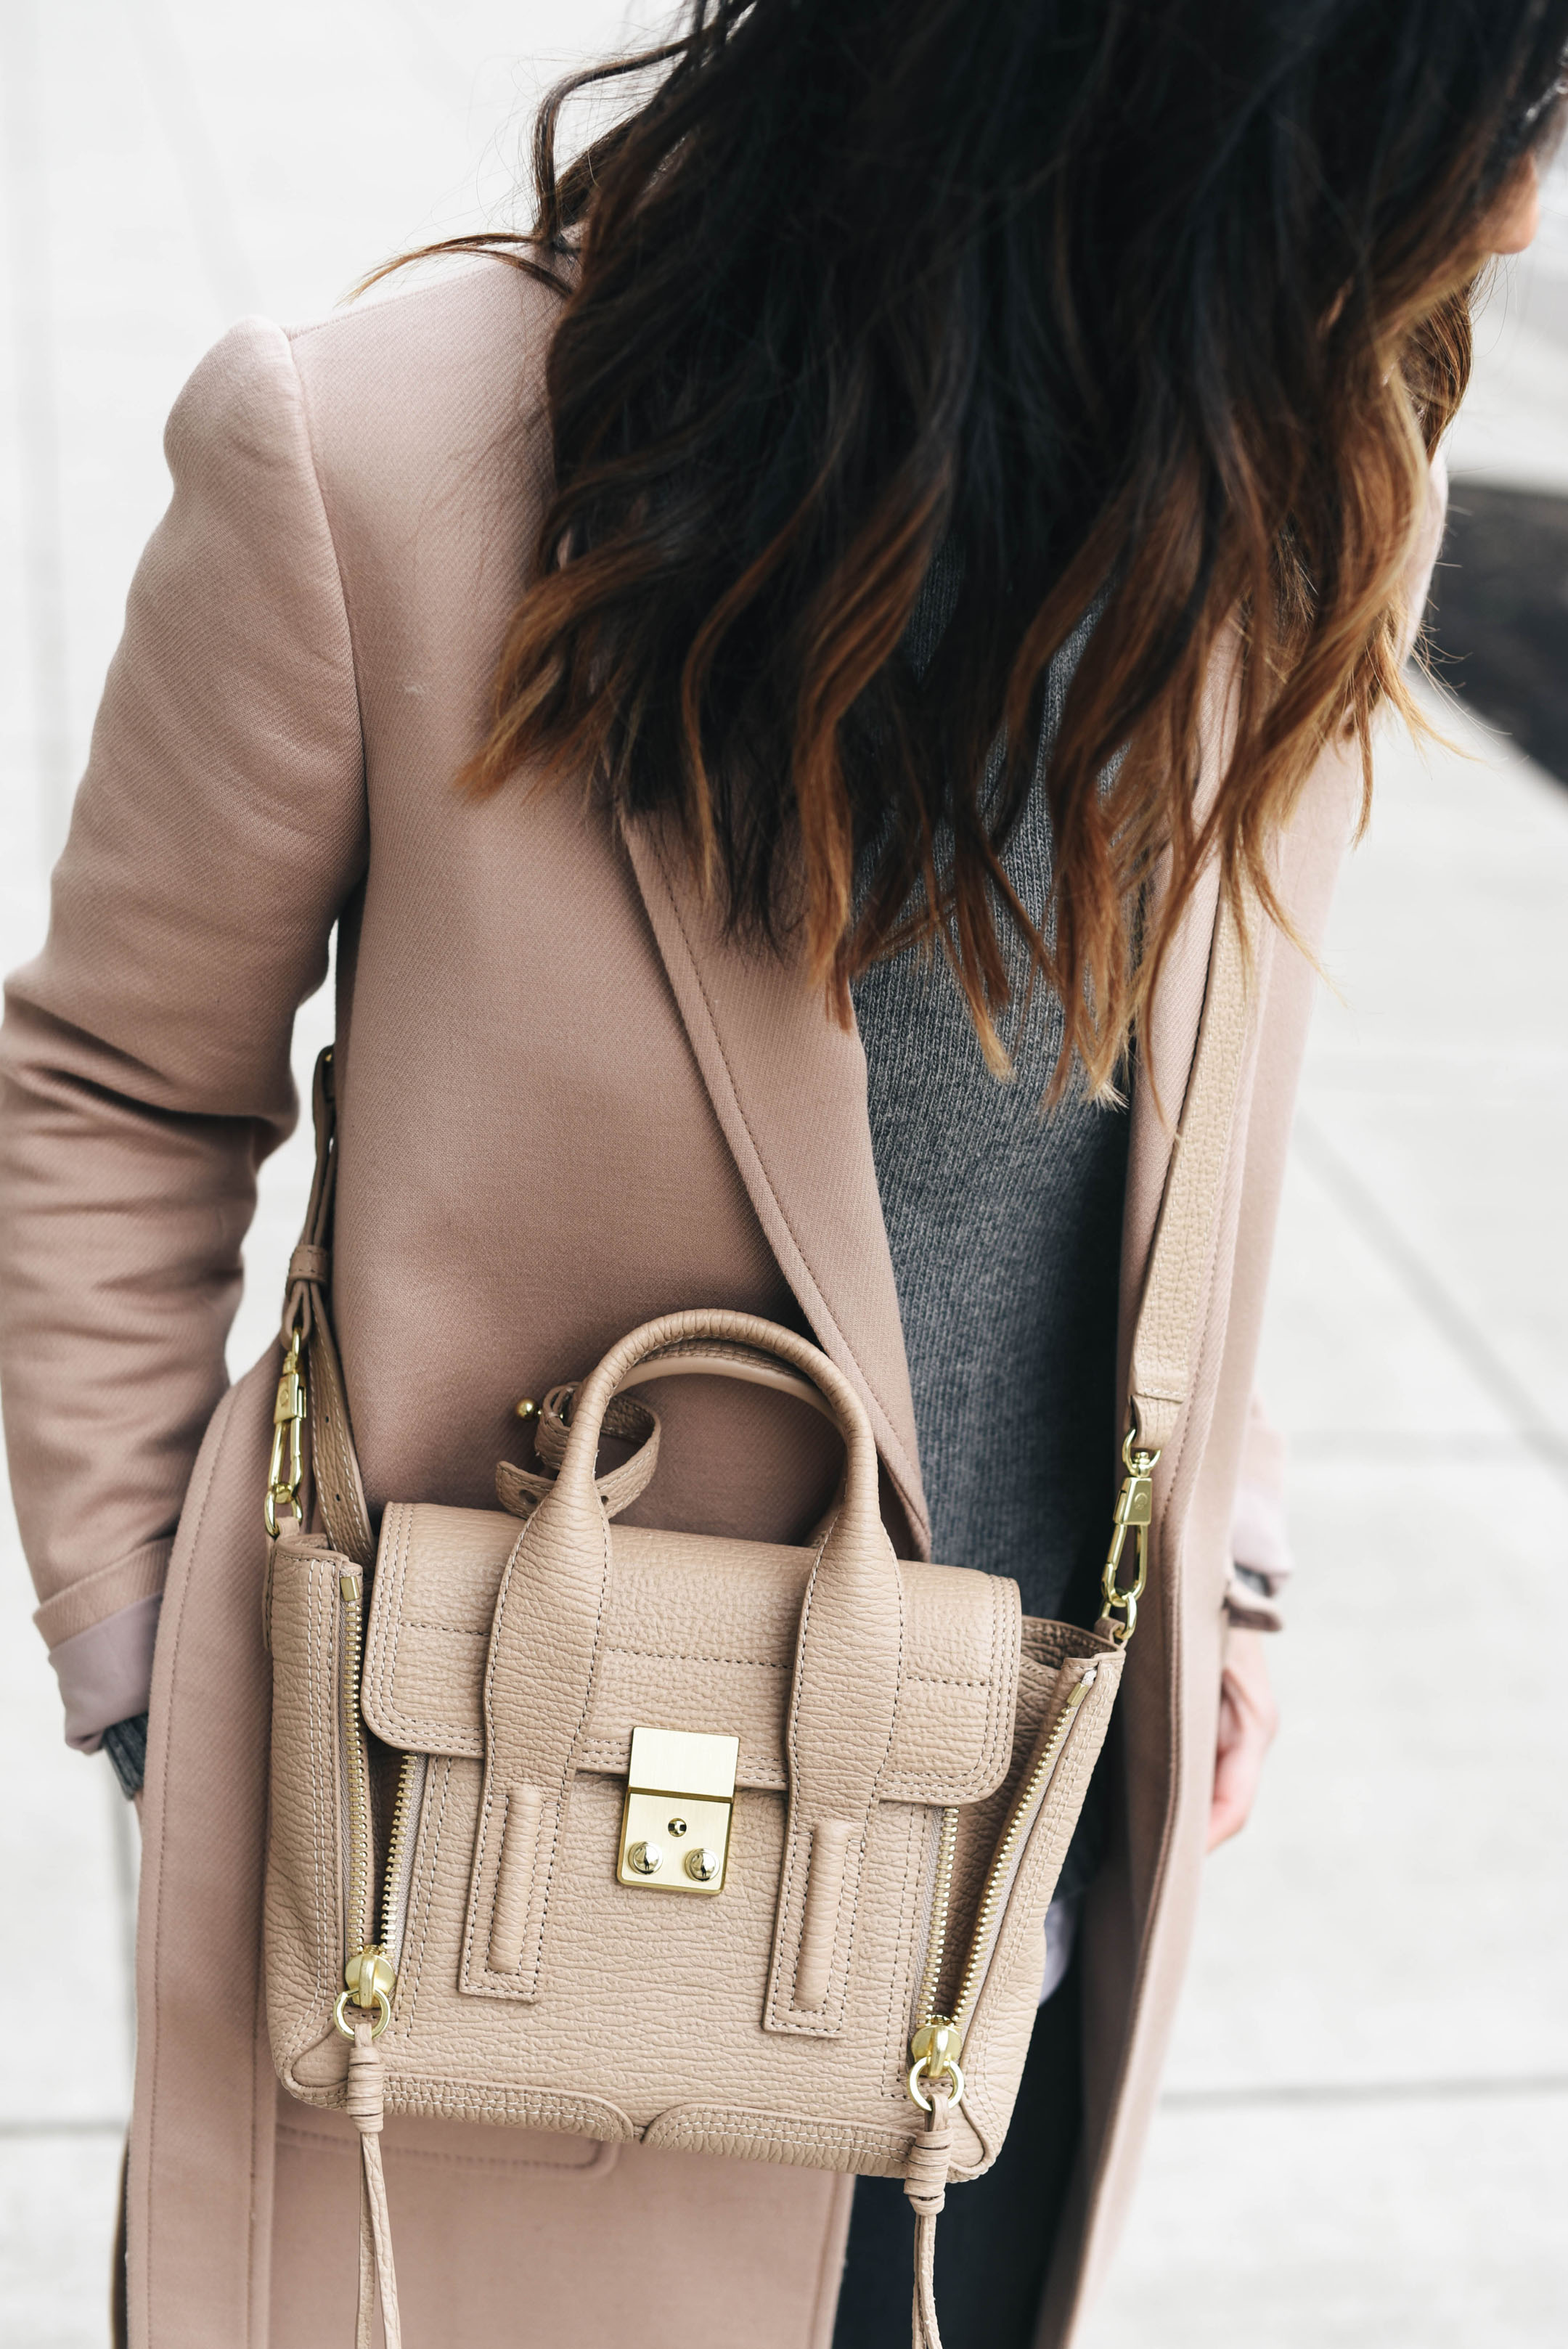 3.1 Phillip Lim Mini Pashli satchel in cashew